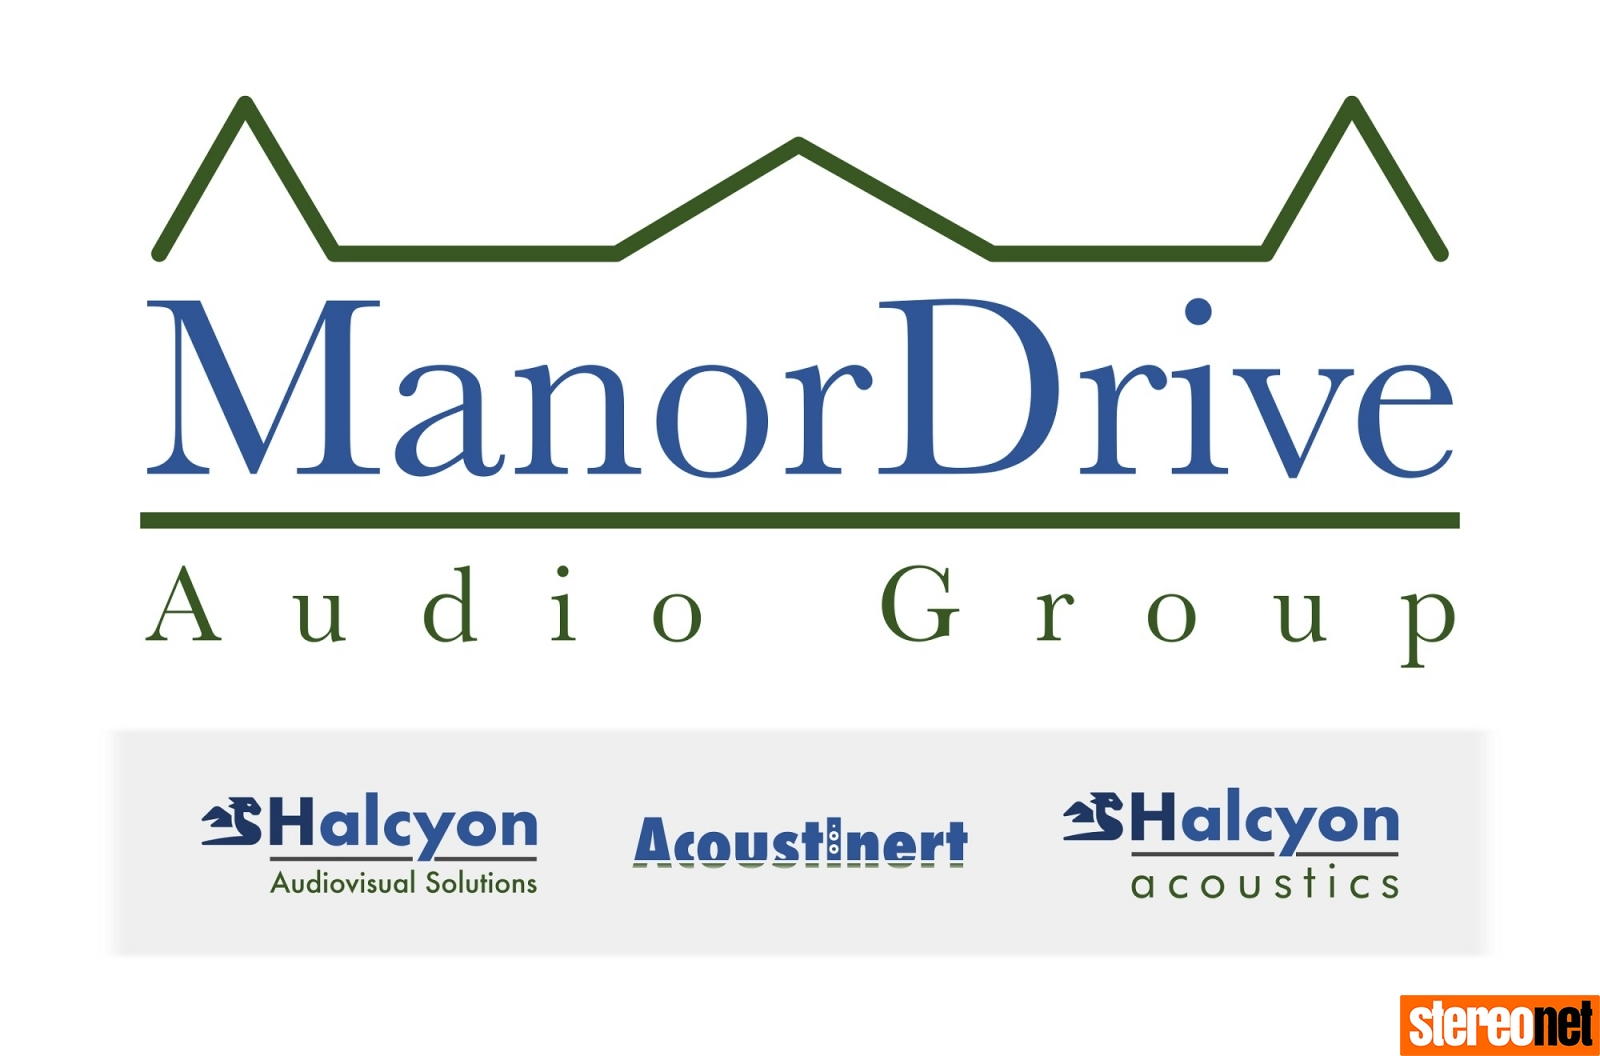 ManorDrive Audio Group joins Clarity Alliance